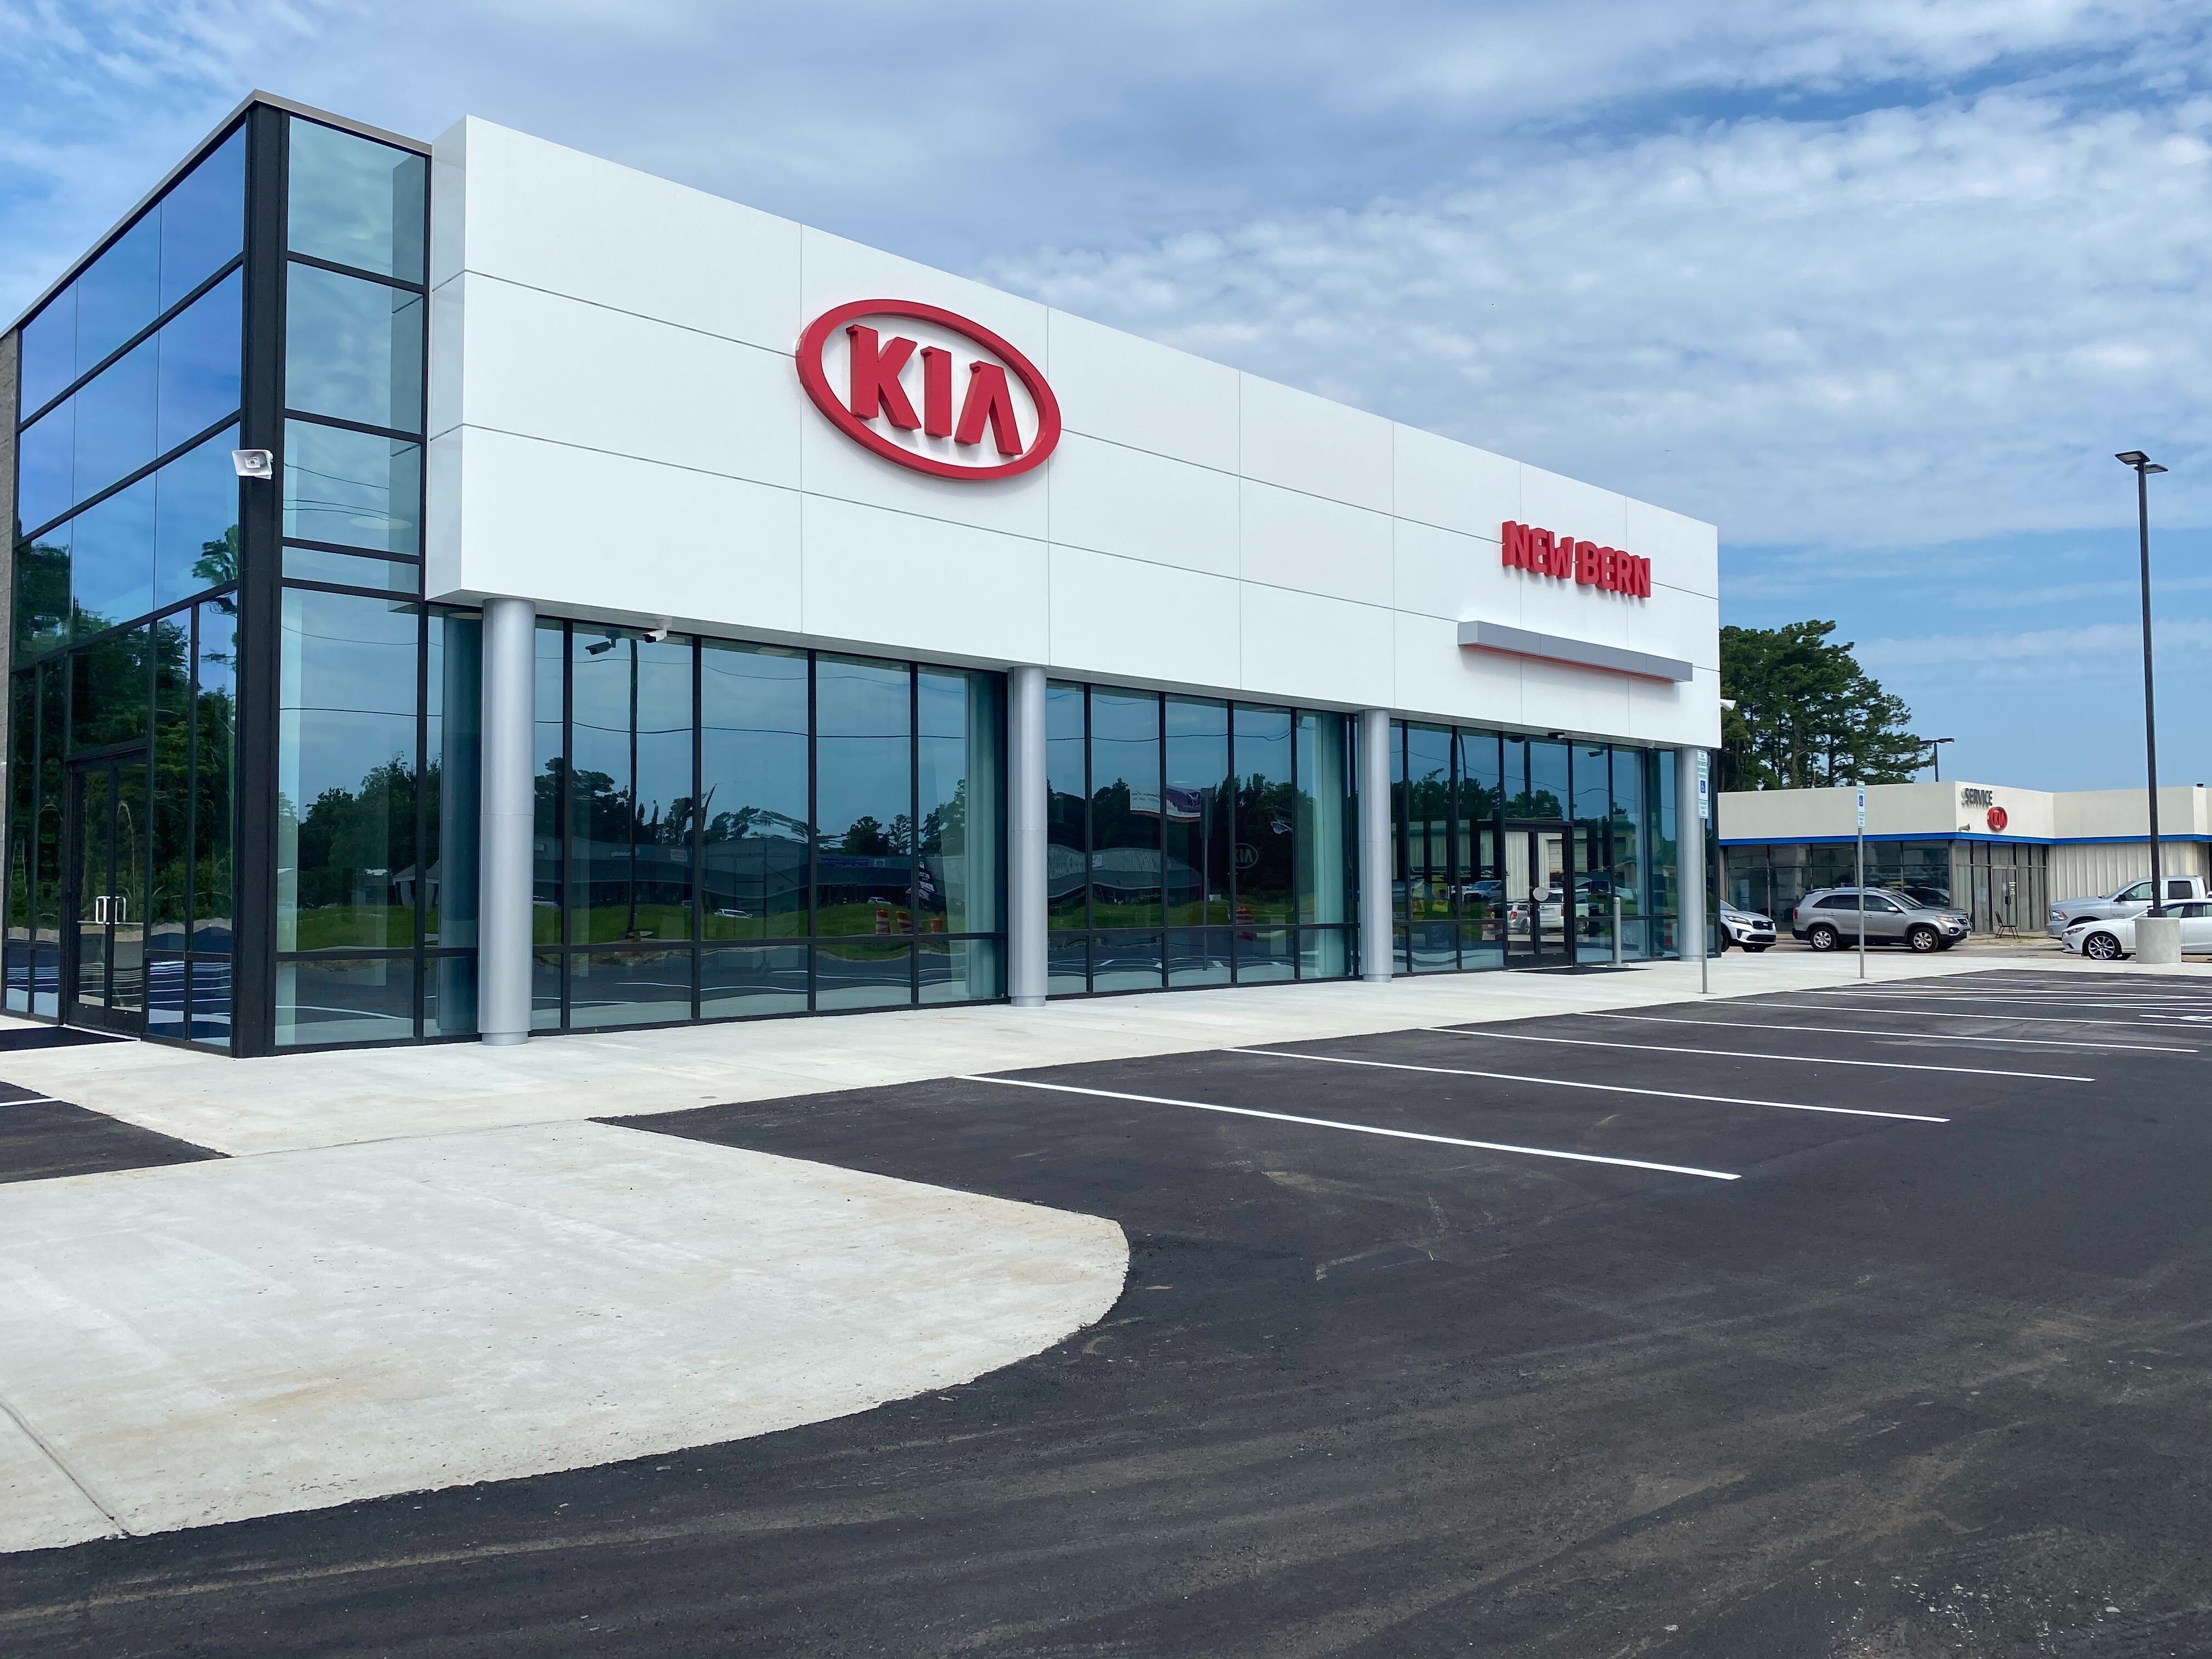 About Kia of New Bern | Storefront of Kia of New Bern